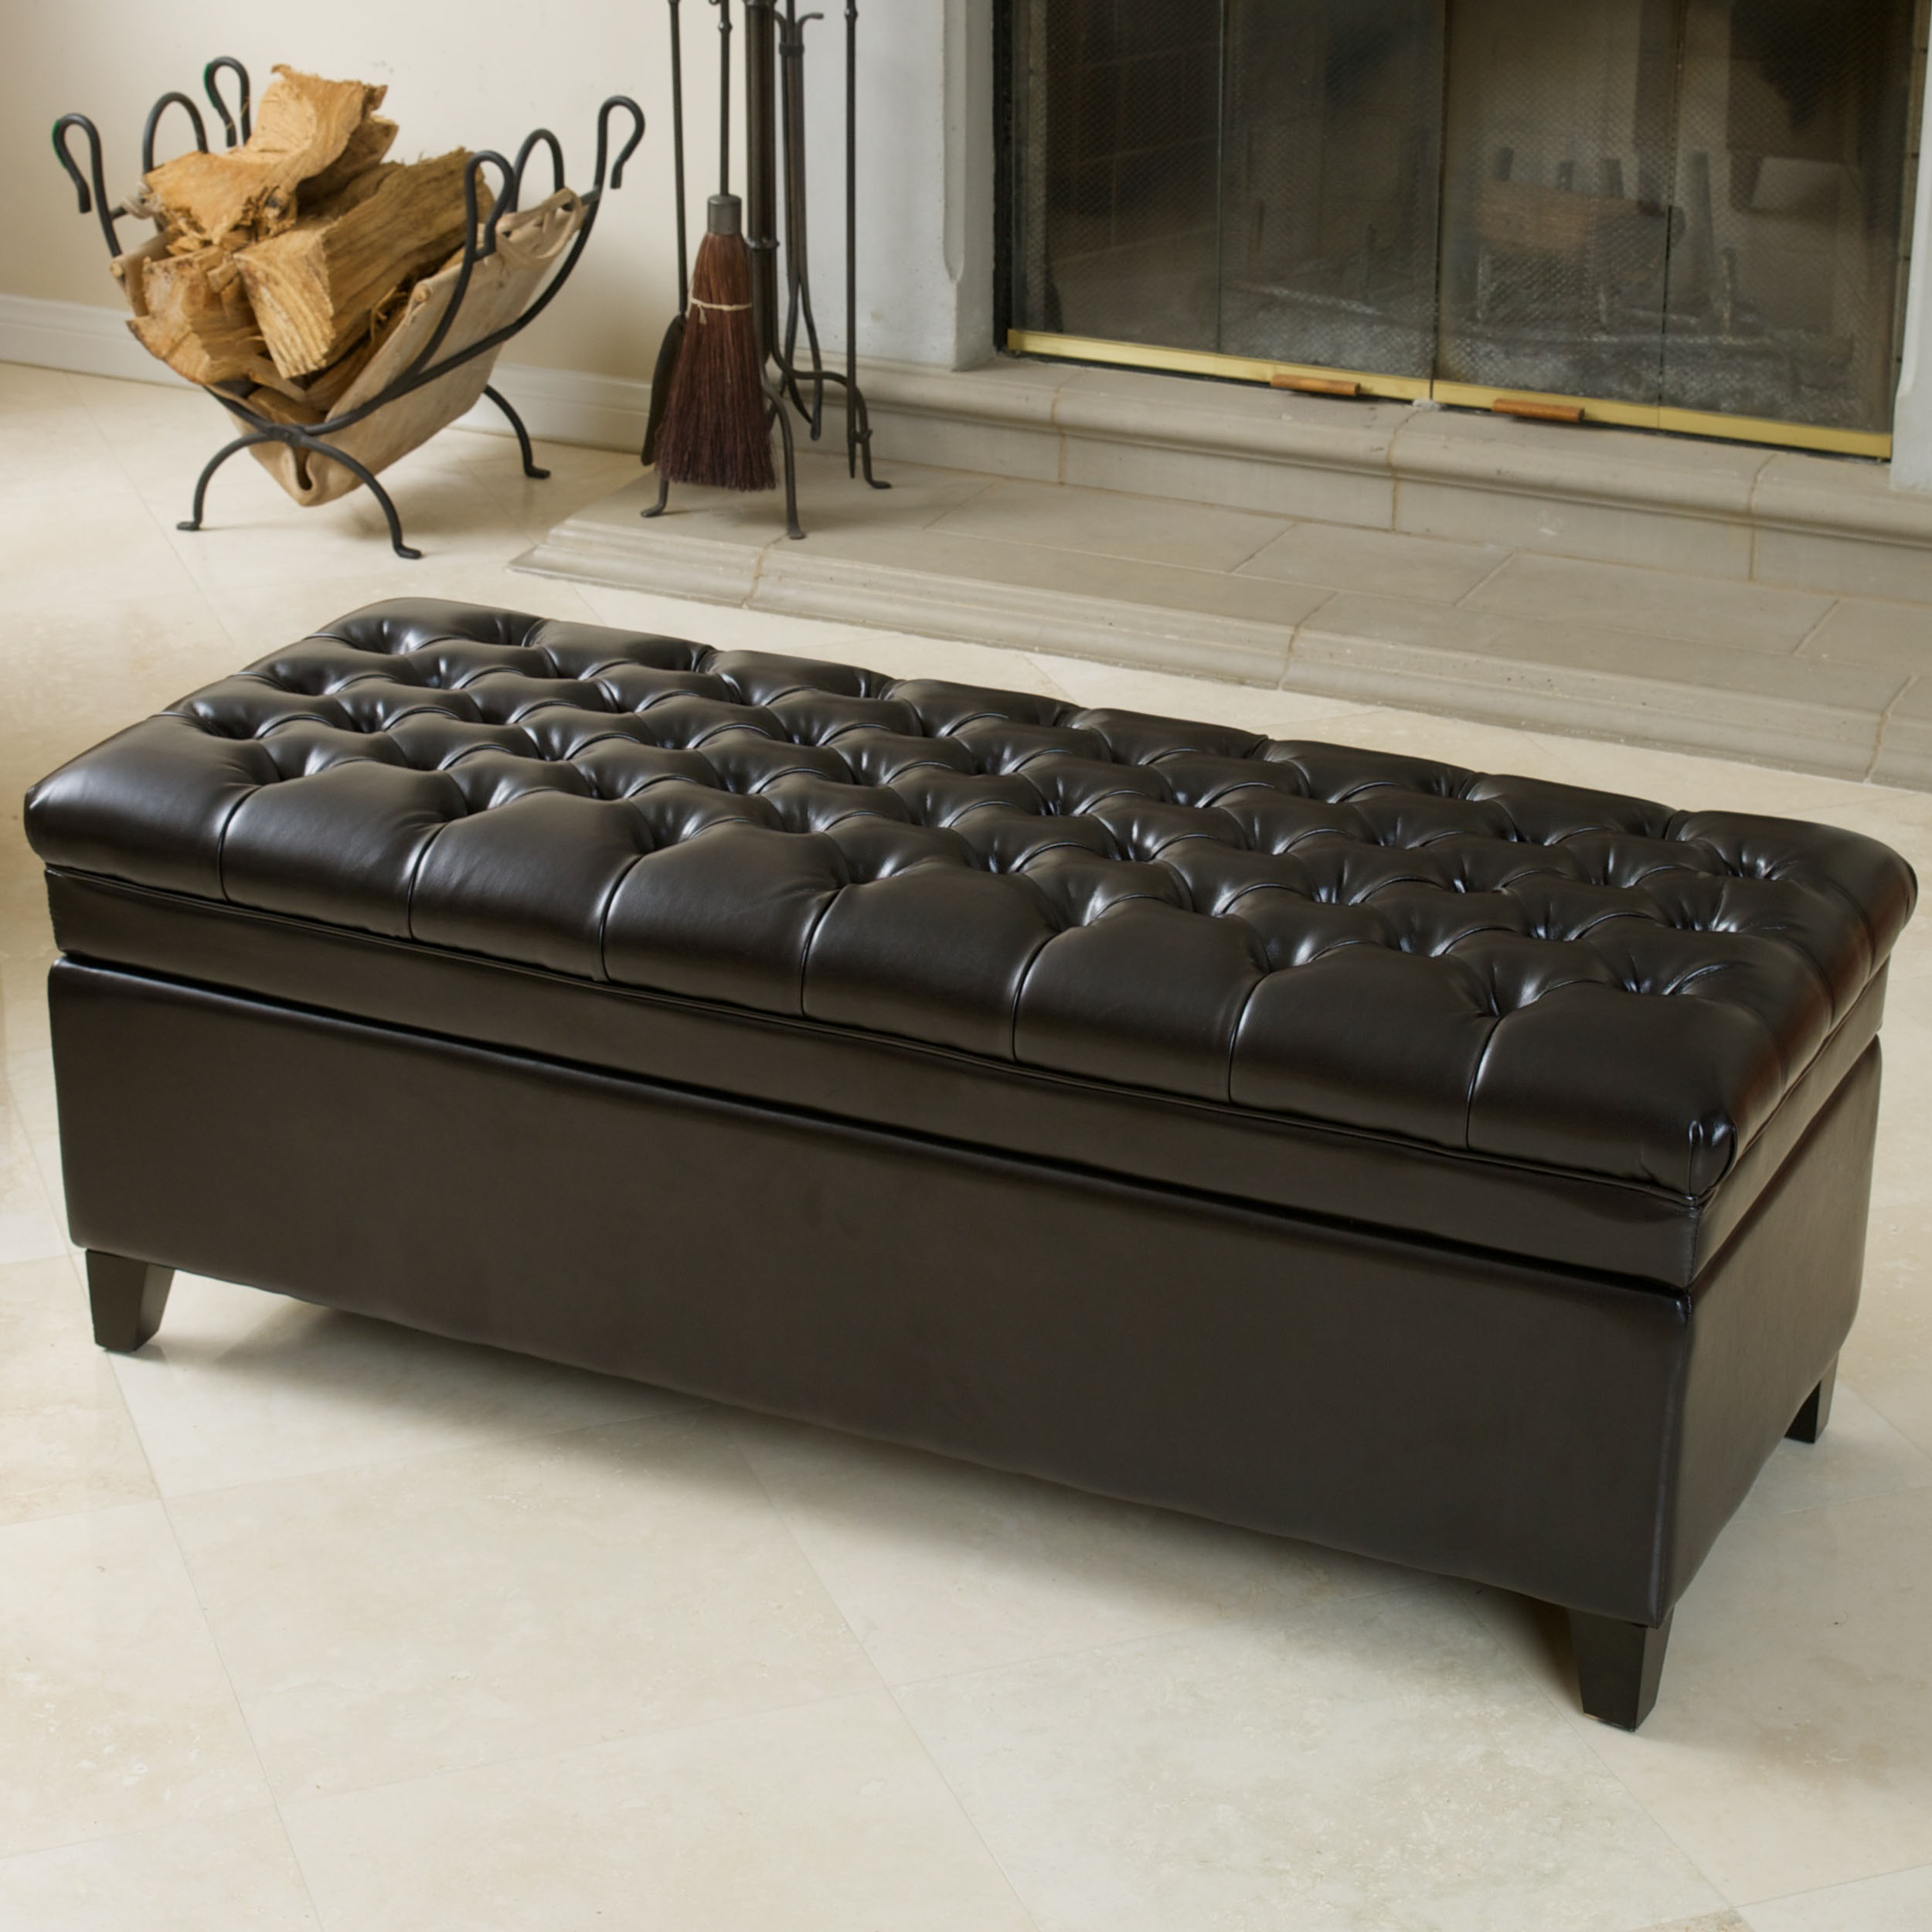 Captivating Bennette Tufted Espresso Brown Leather Storage Ottoman